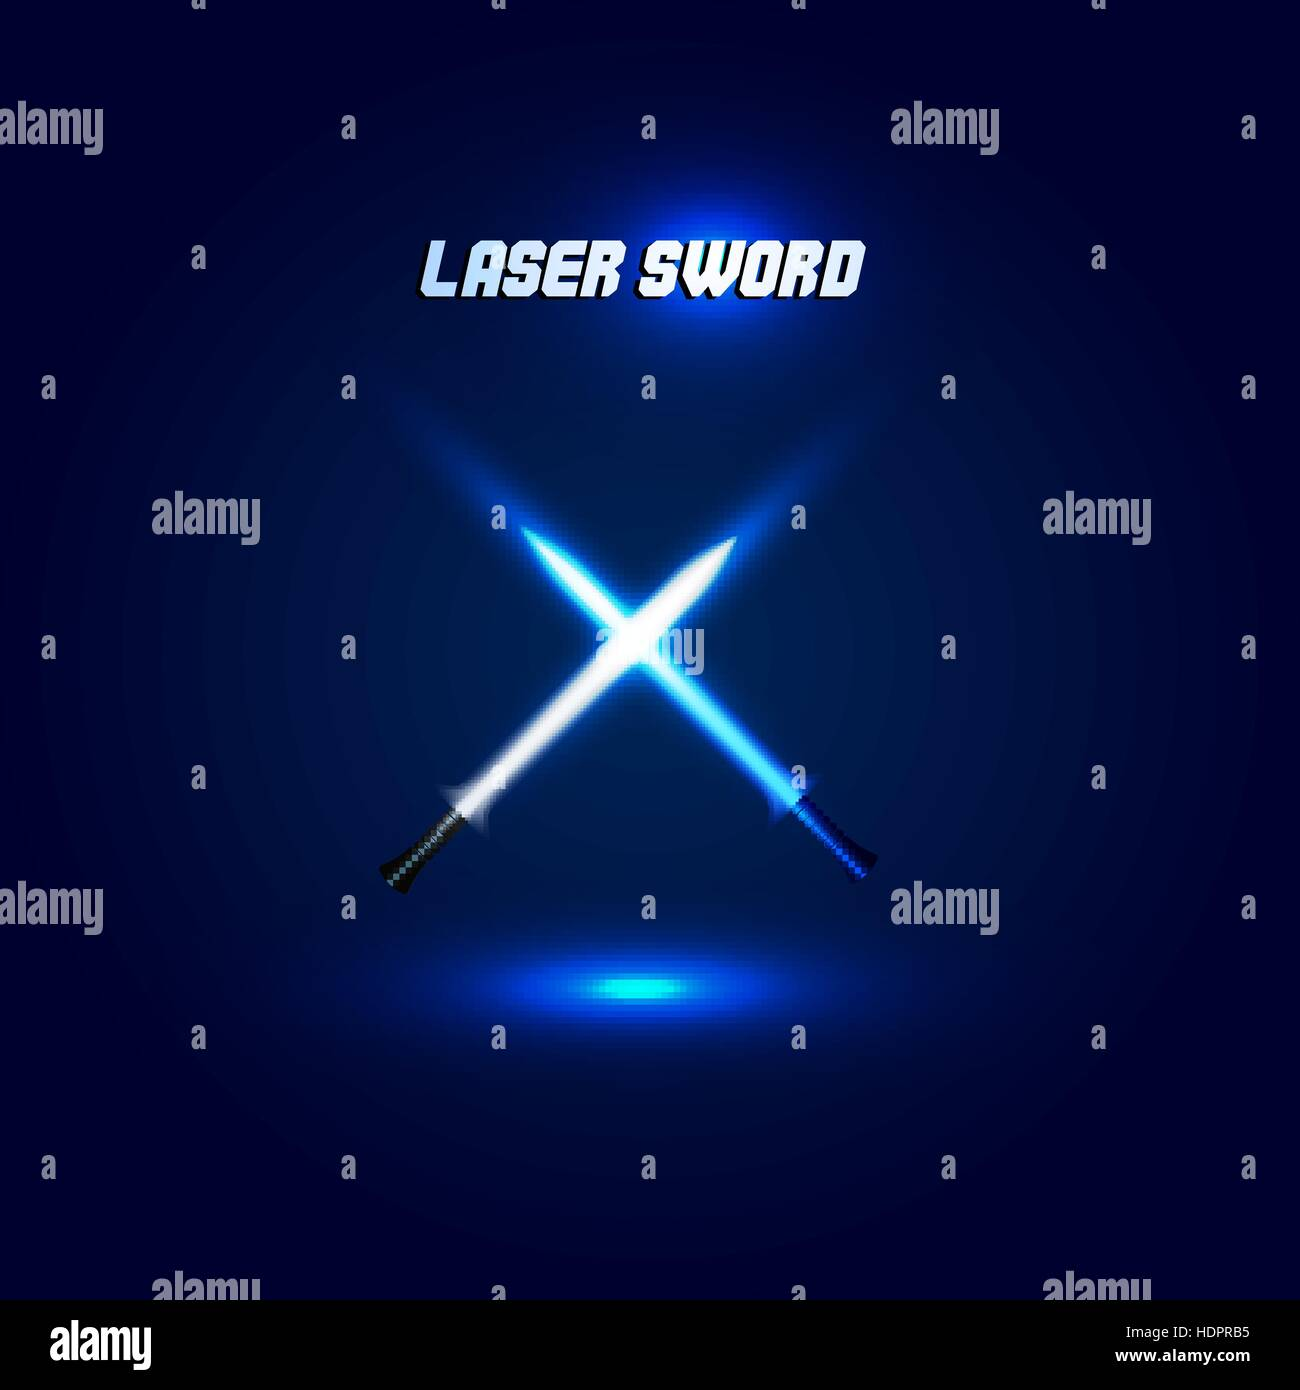 Light Saber Battle Stock Photos Images Laser Engraver The Electronic Mercenary Isolated Crossed Swords Logo Futuristic Movie Weapon Logotype Sabre With Fire Force Icon